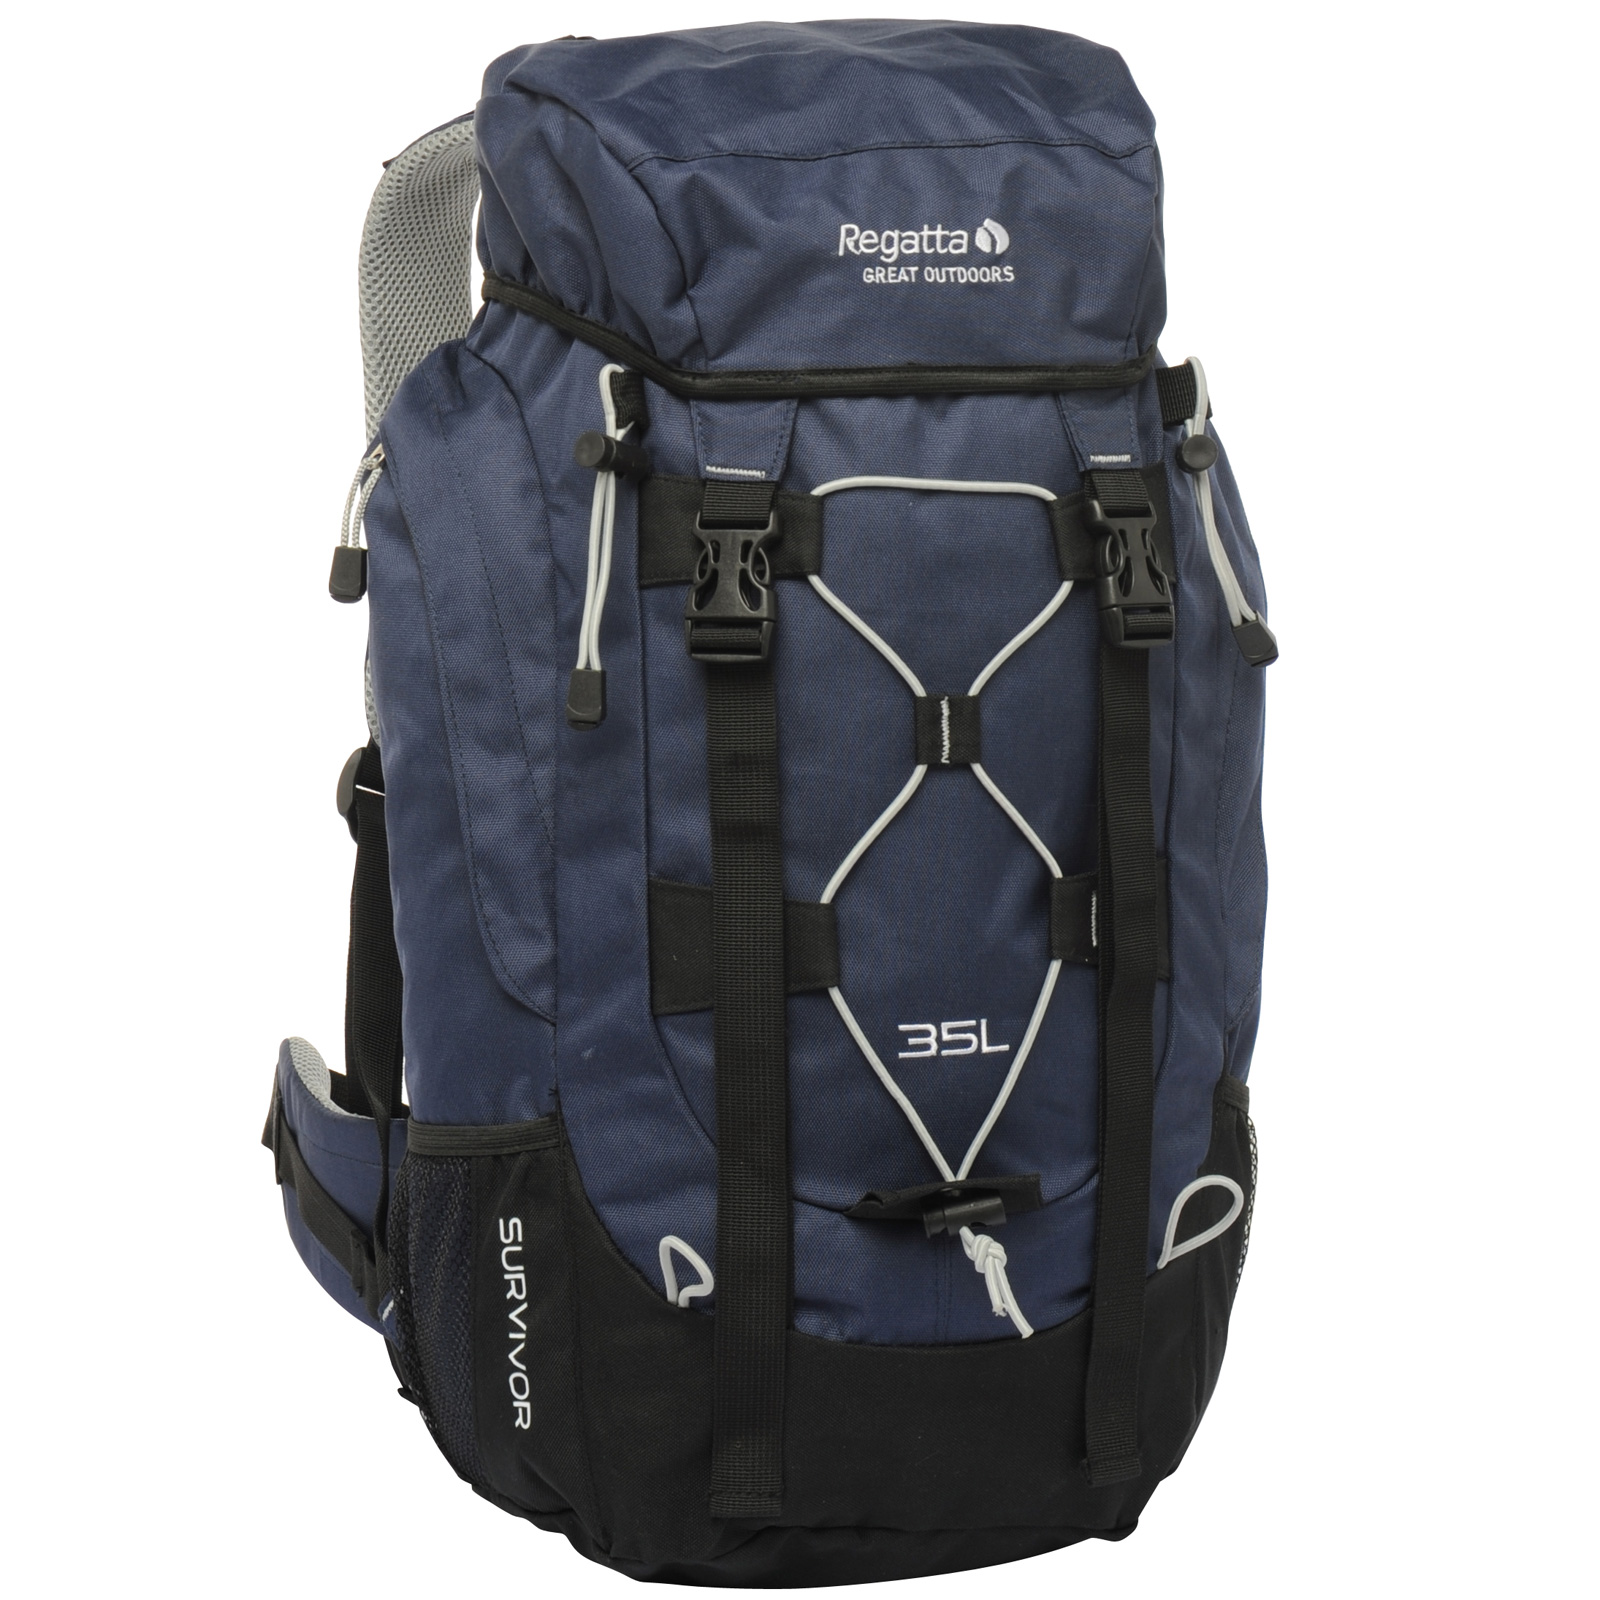 regatta survivor 35l trekking rucksack 35 liter blau neu. Black Bedroom Furniture Sets. Home Design Ideas